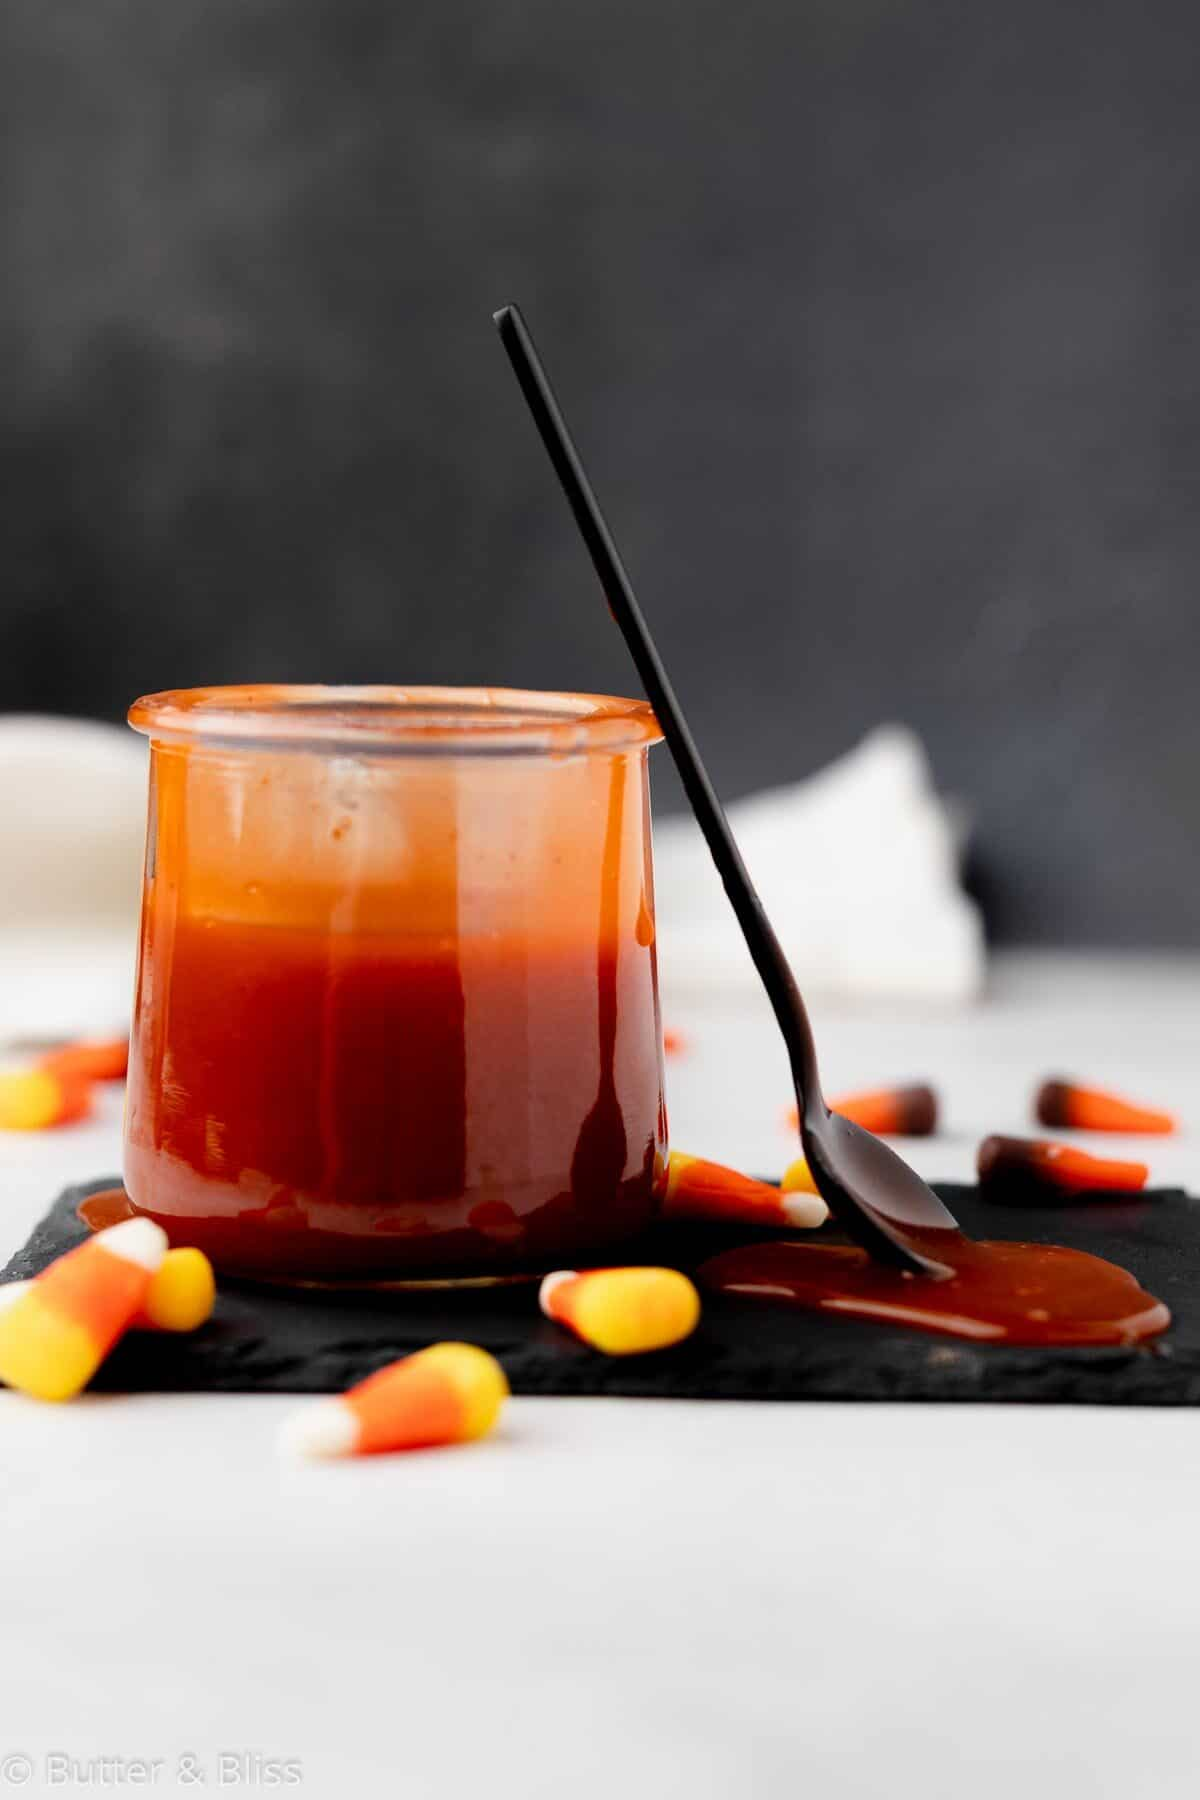 A jar of candy corn caramel sauce with a spoon